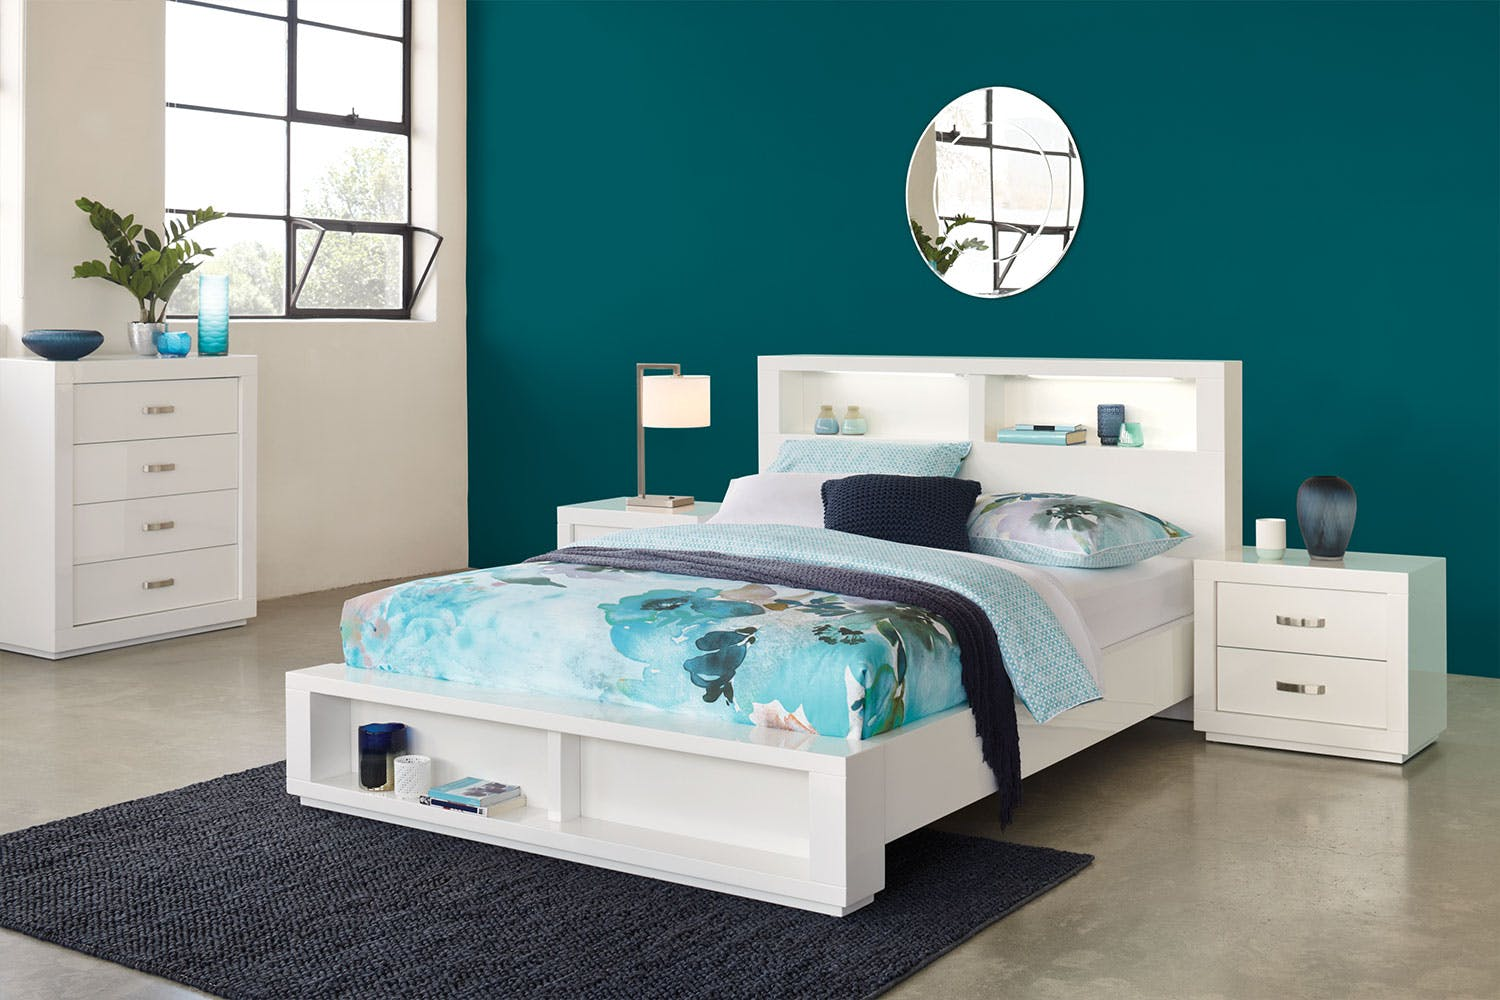 What The Bed Frame Does